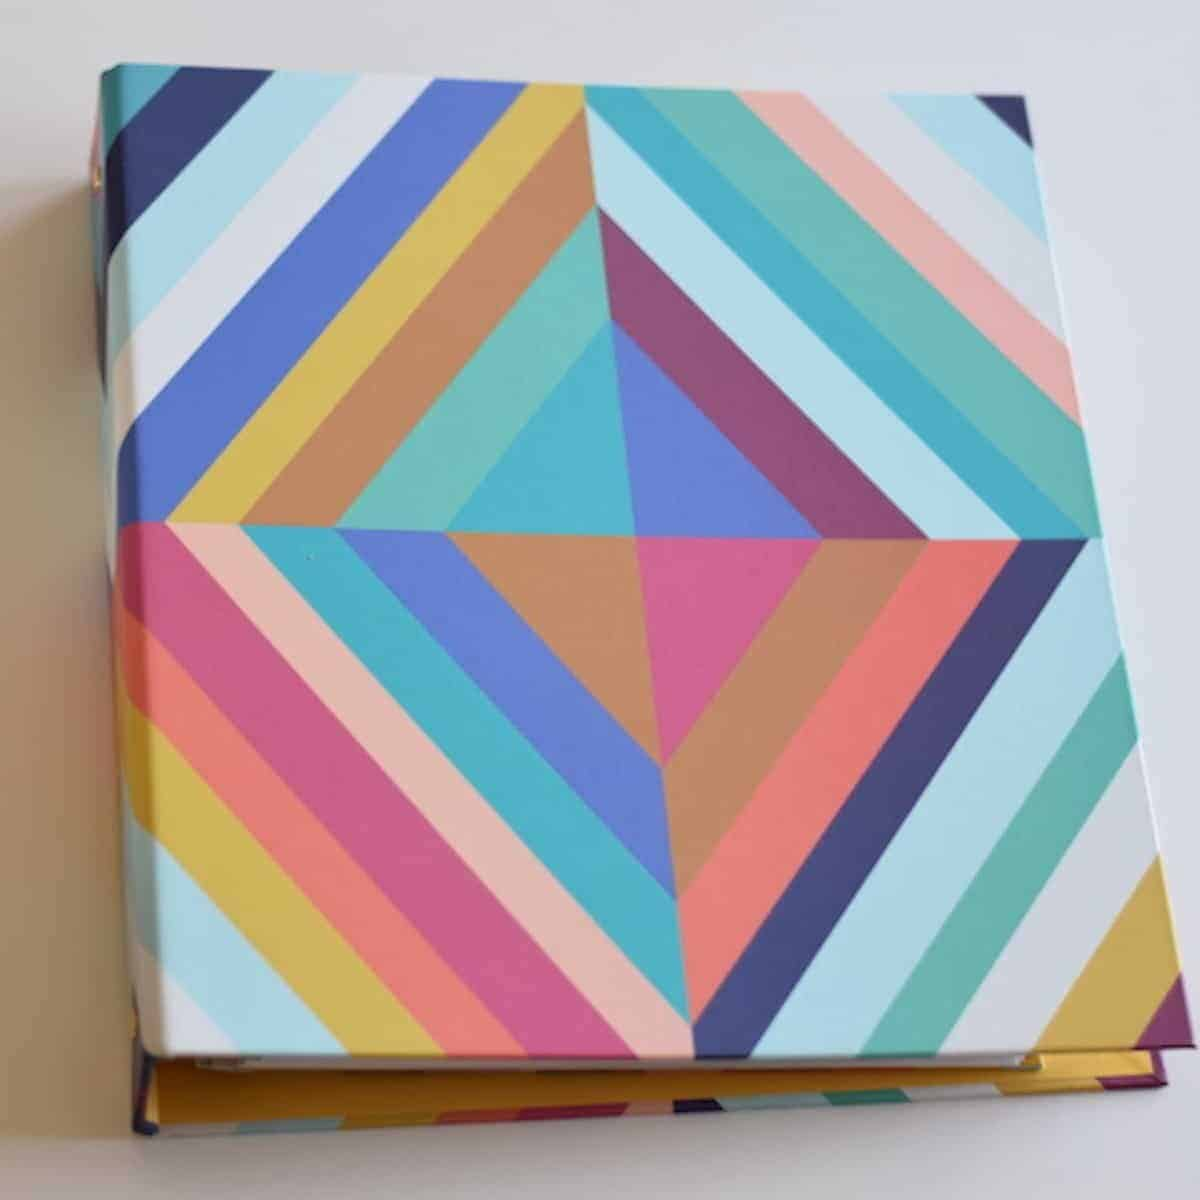 Erin Condren Teacher planner binder in bold colorful stripes